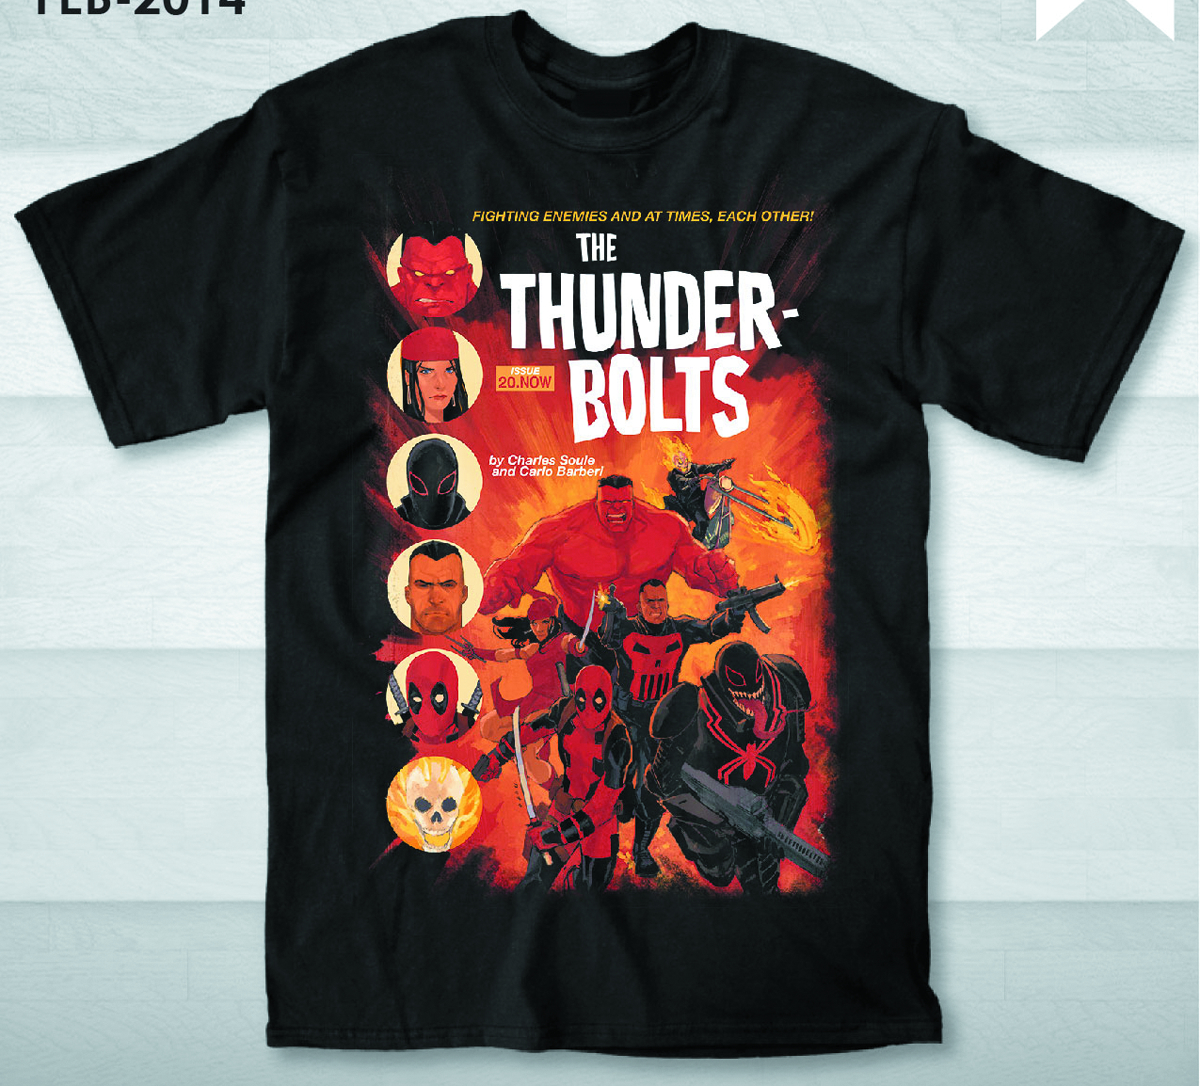 THUNDERBOLTS PX BLK T/S LG